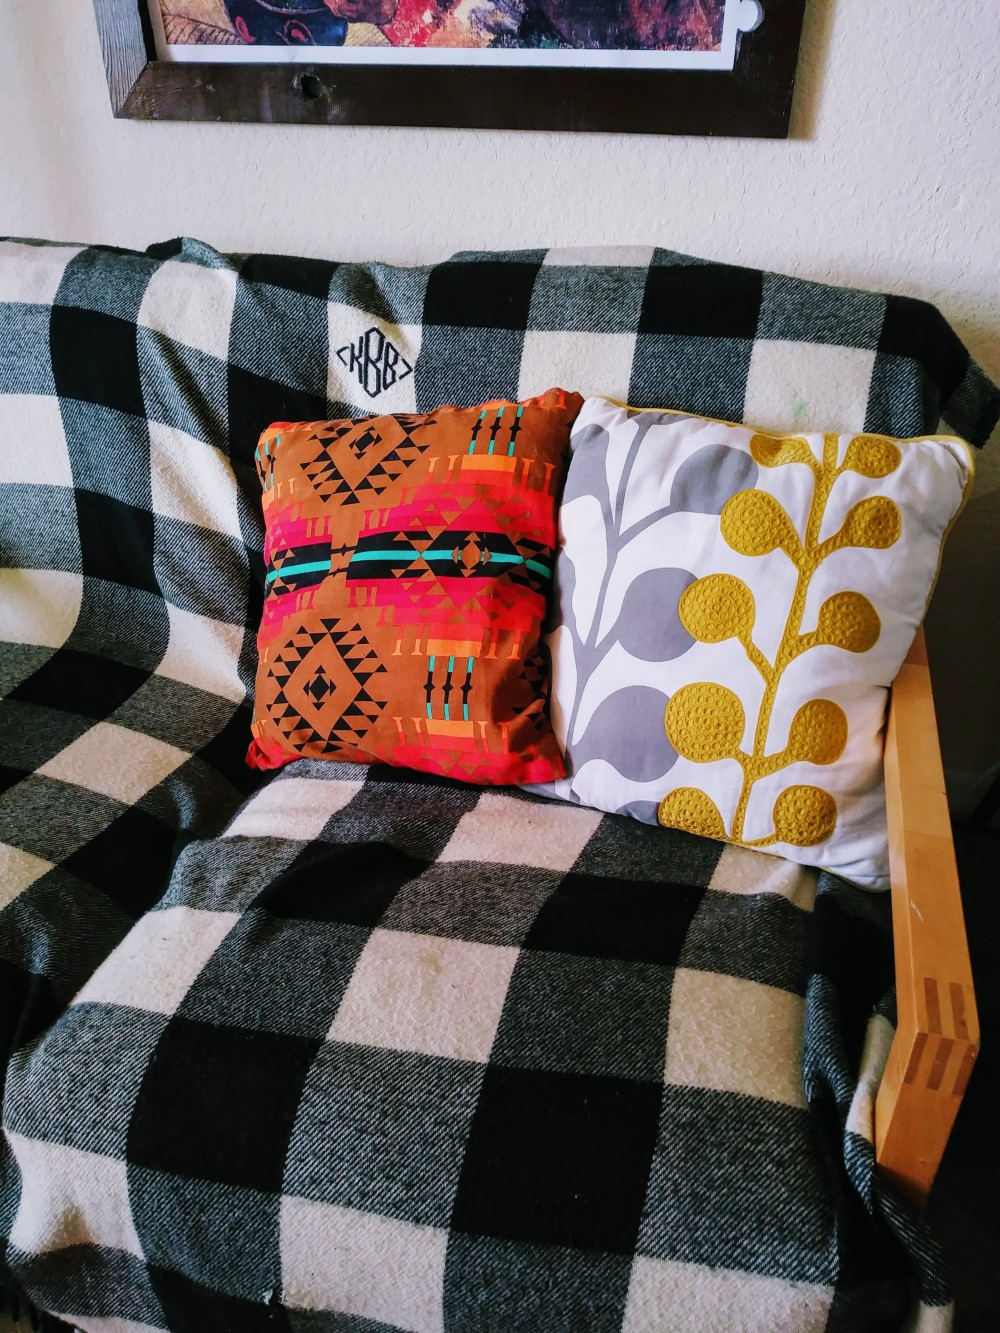 Two Pillows on Checkered Blanket